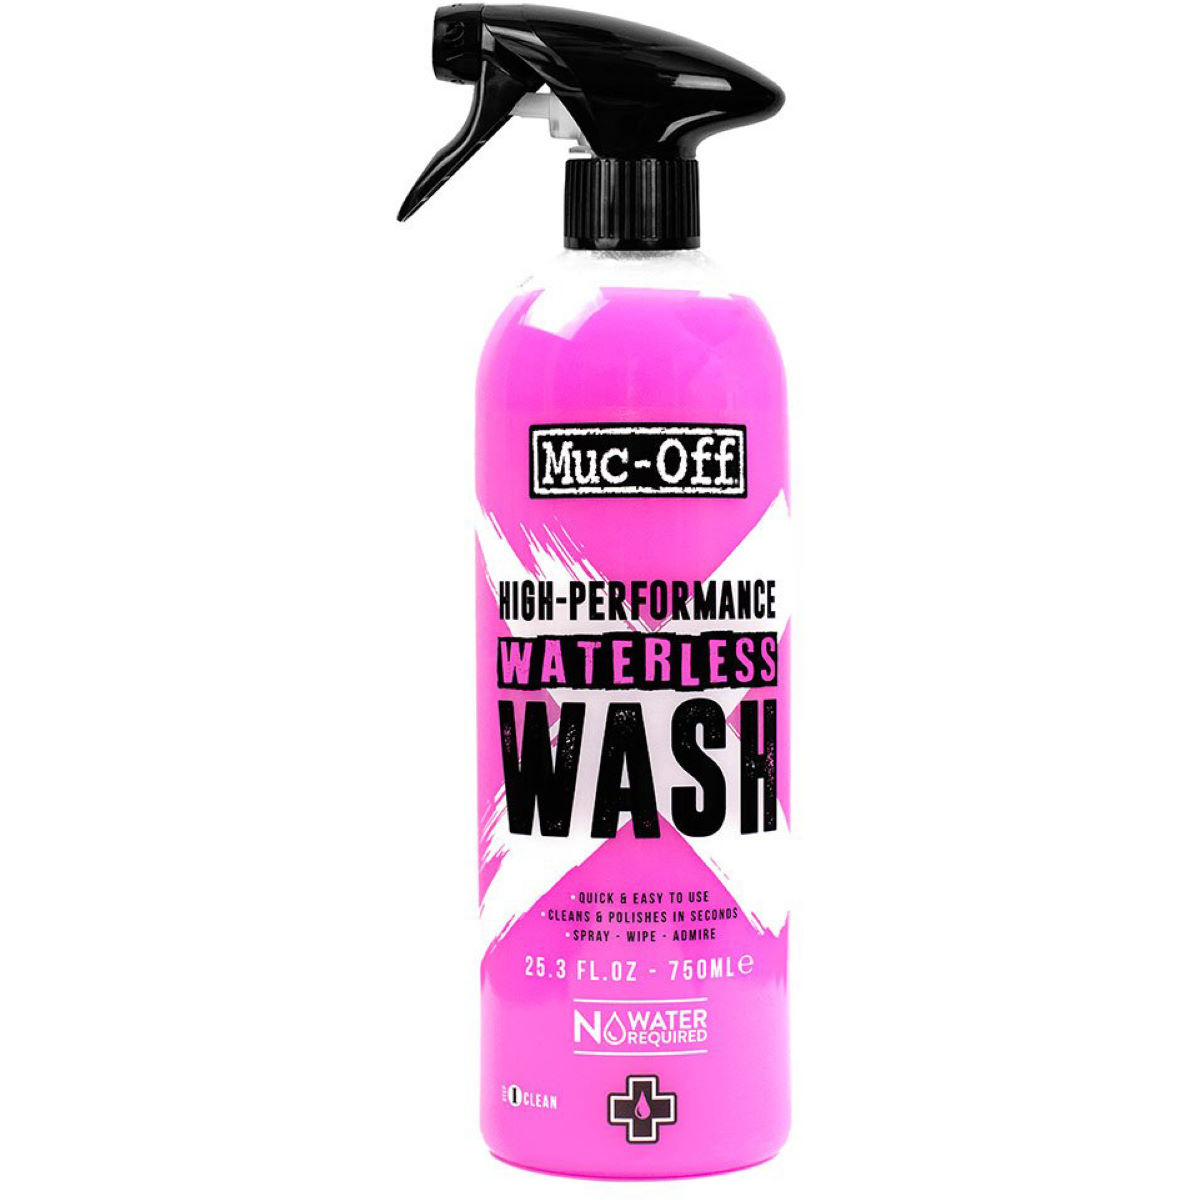 Muc-Off Muc-Off Waterless Wash   Cleaning Products